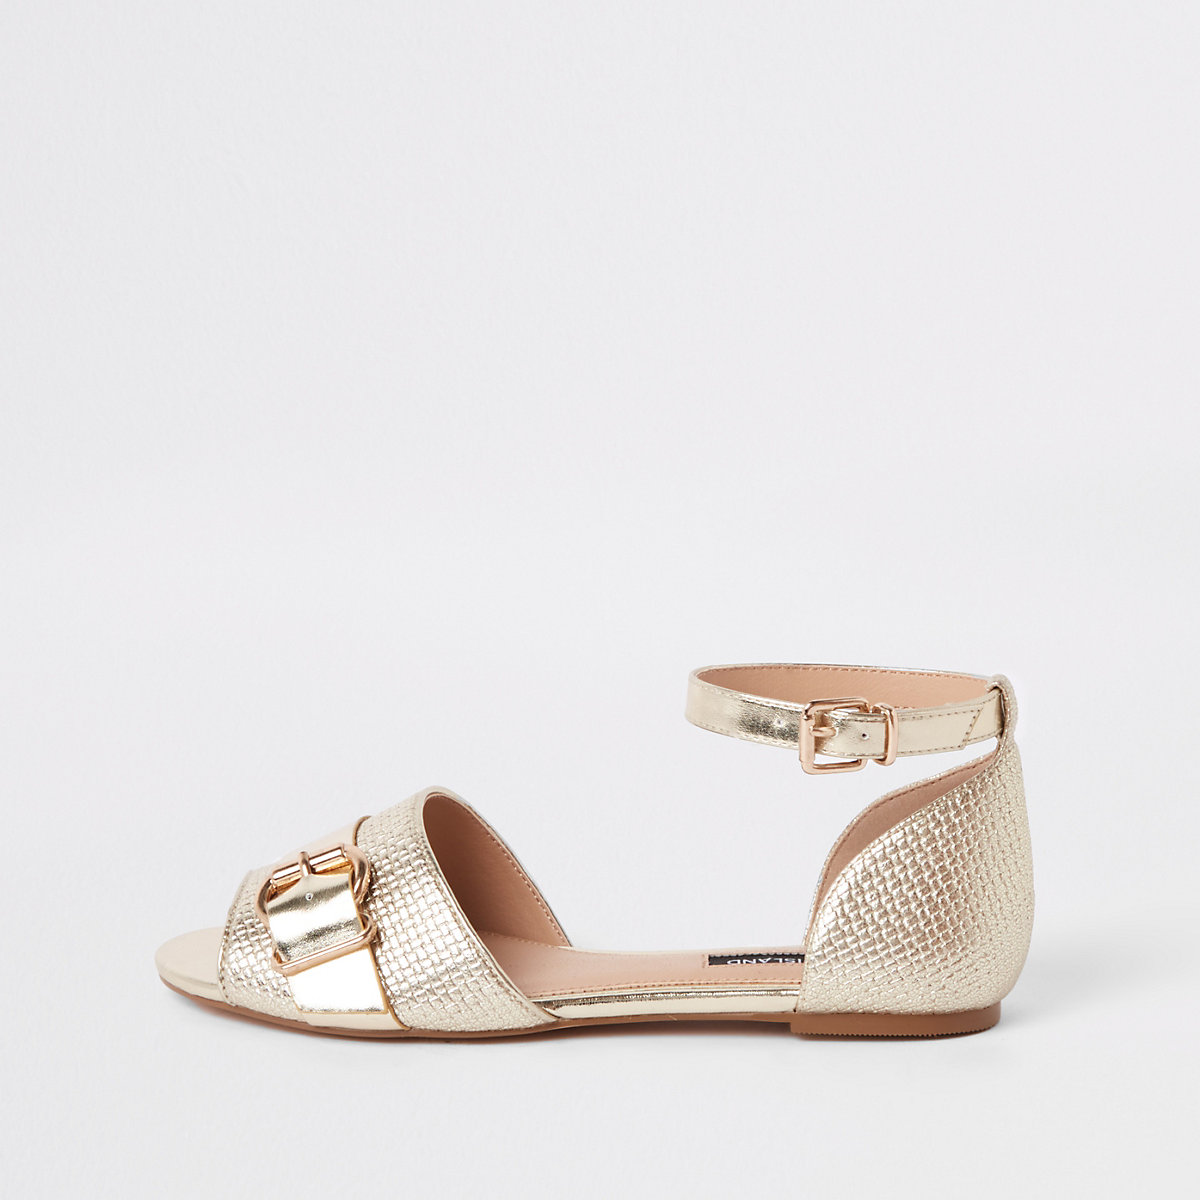 Gold textured ankle strap shoe